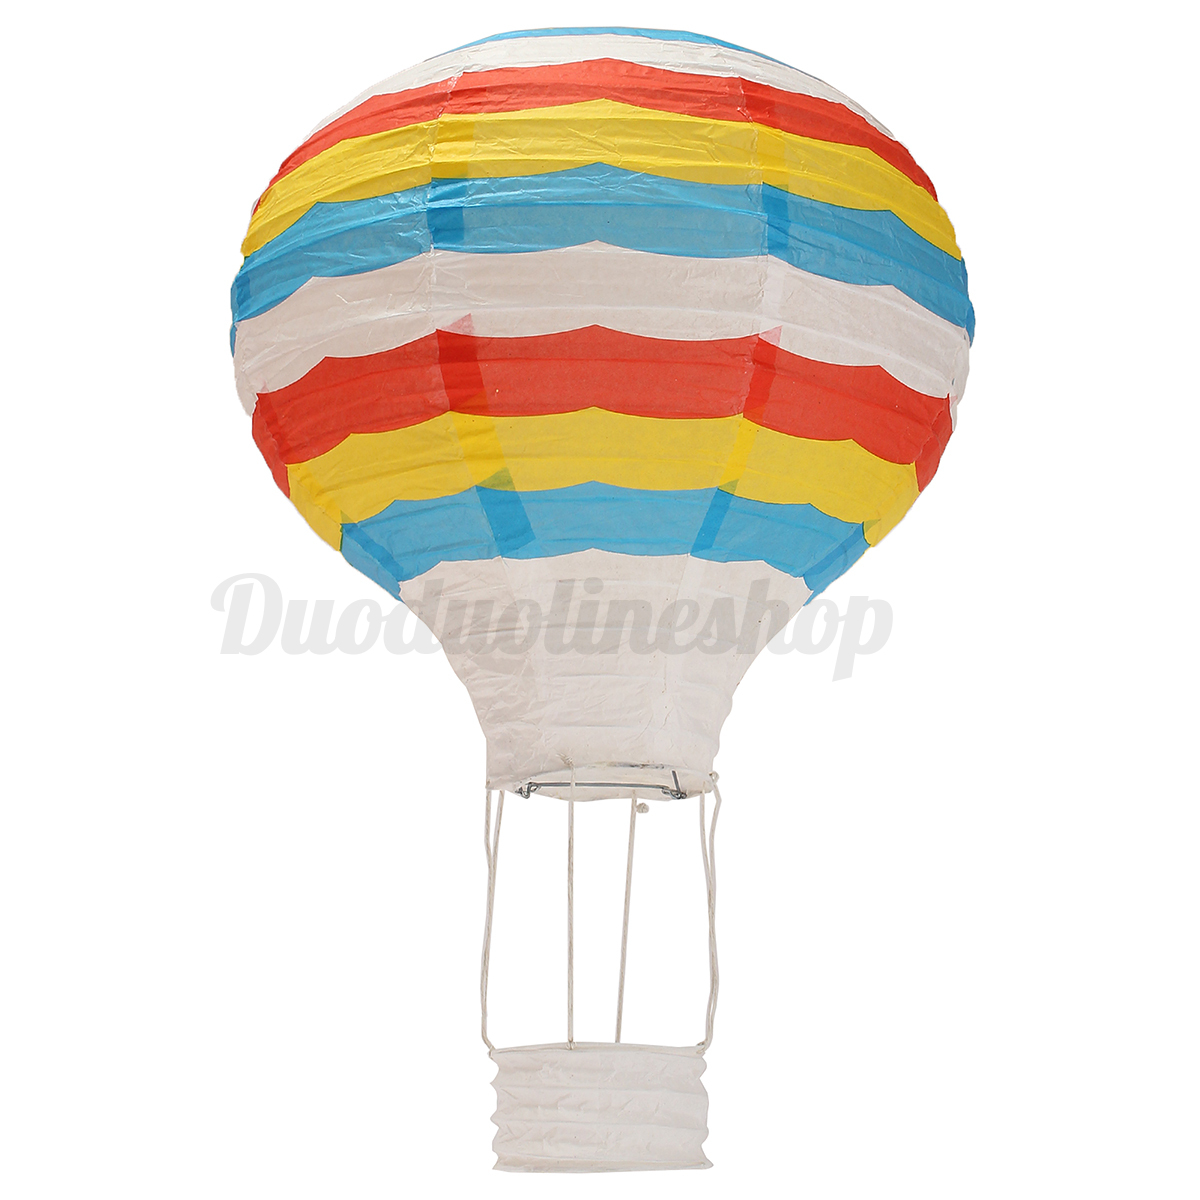 12 39 39 hot air balloon paper lantern lampshade ceiling light for Air balloon decoration